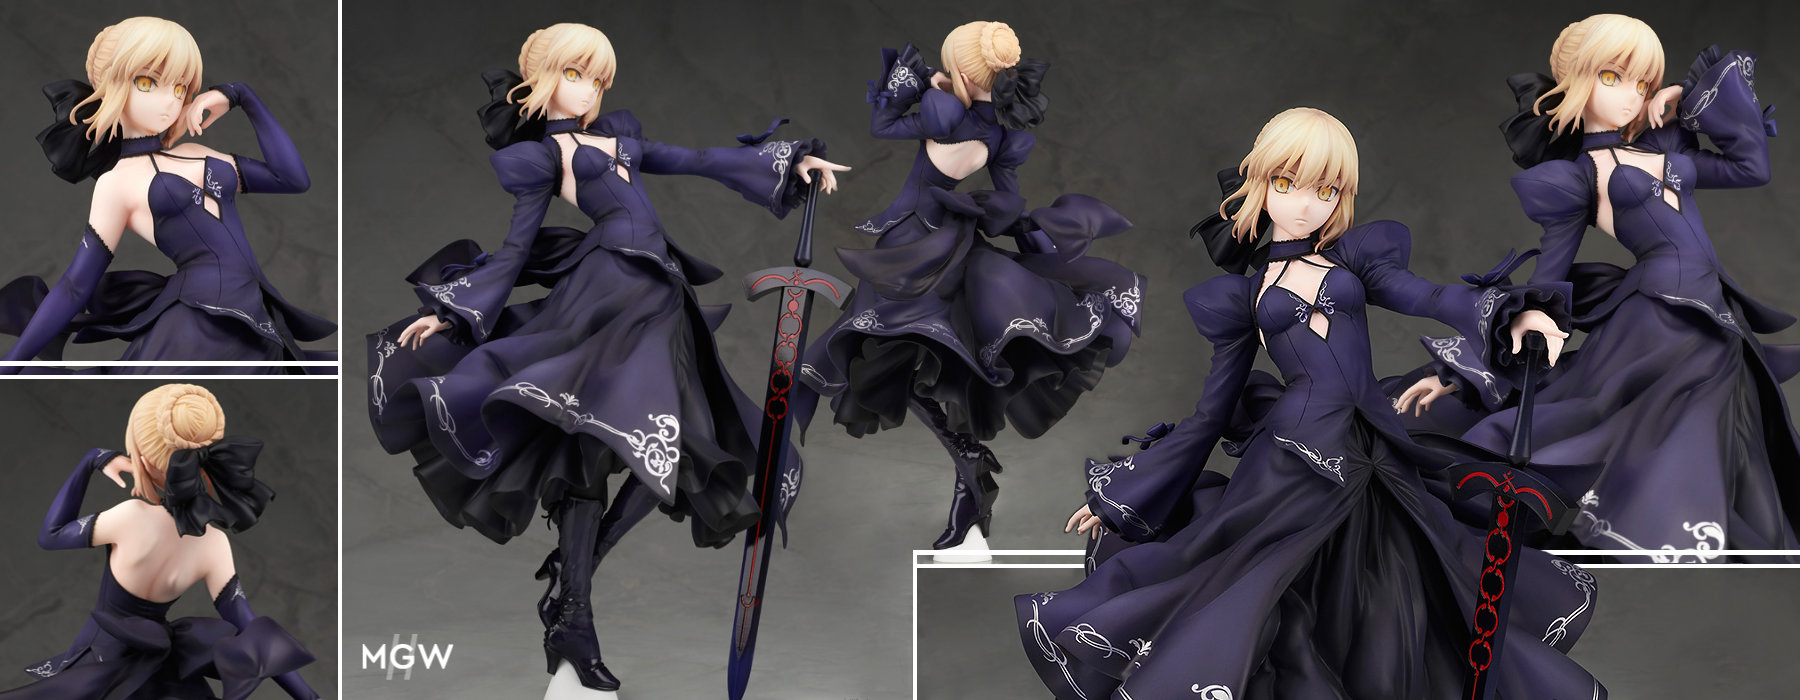 Saber Altria Pendragon Alter Dress ver. by ALTER from Fate Grand Order MGW Anime Figure Pre order Guide